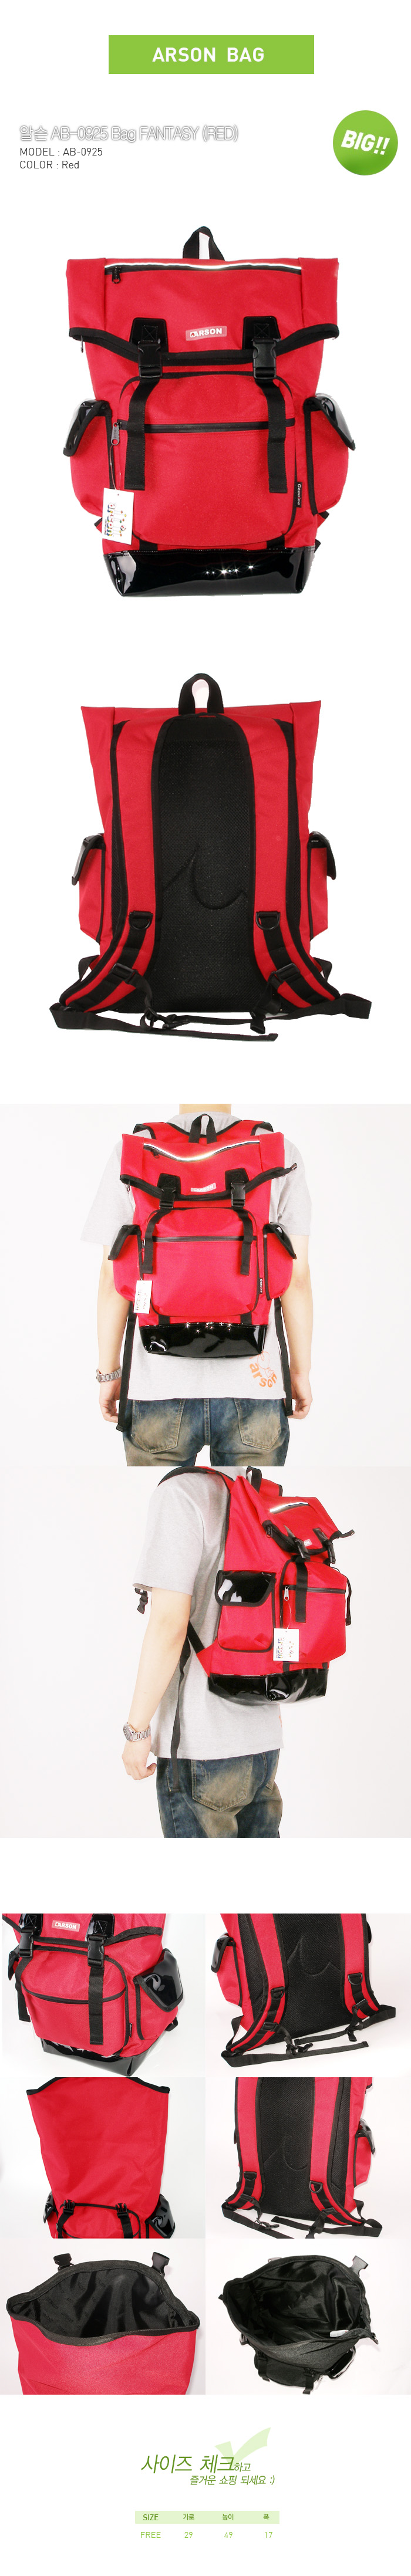 [ ARSON ] AB-0925 (Red)/Backpack School Bag